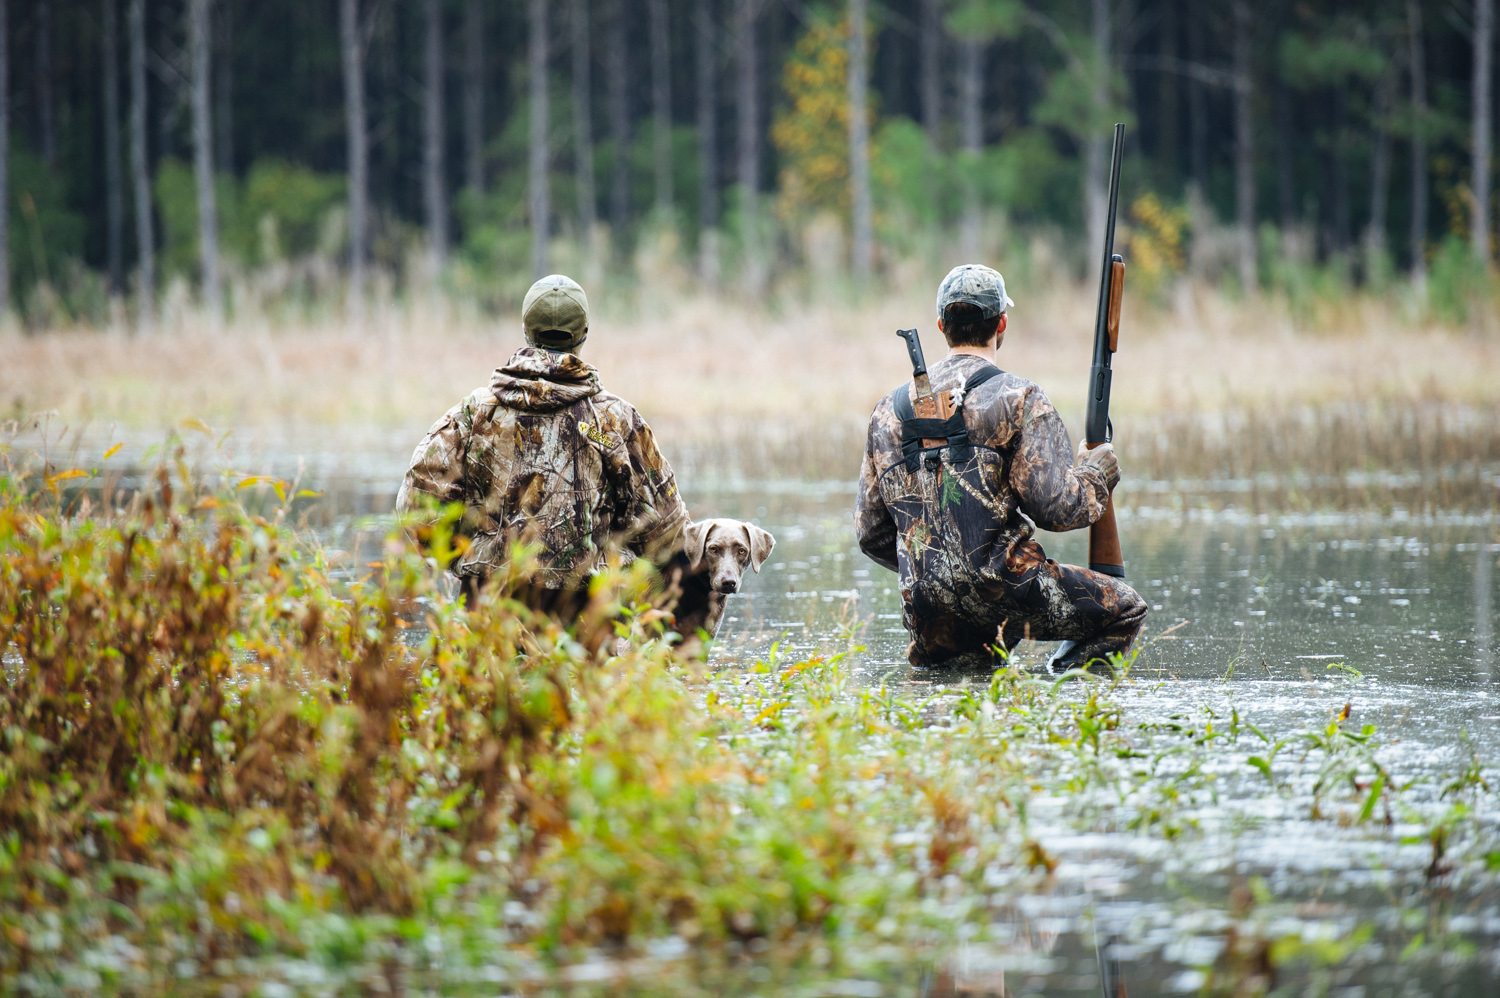 #skinnywaders2013 I THE2654PROJECT-12.jpg